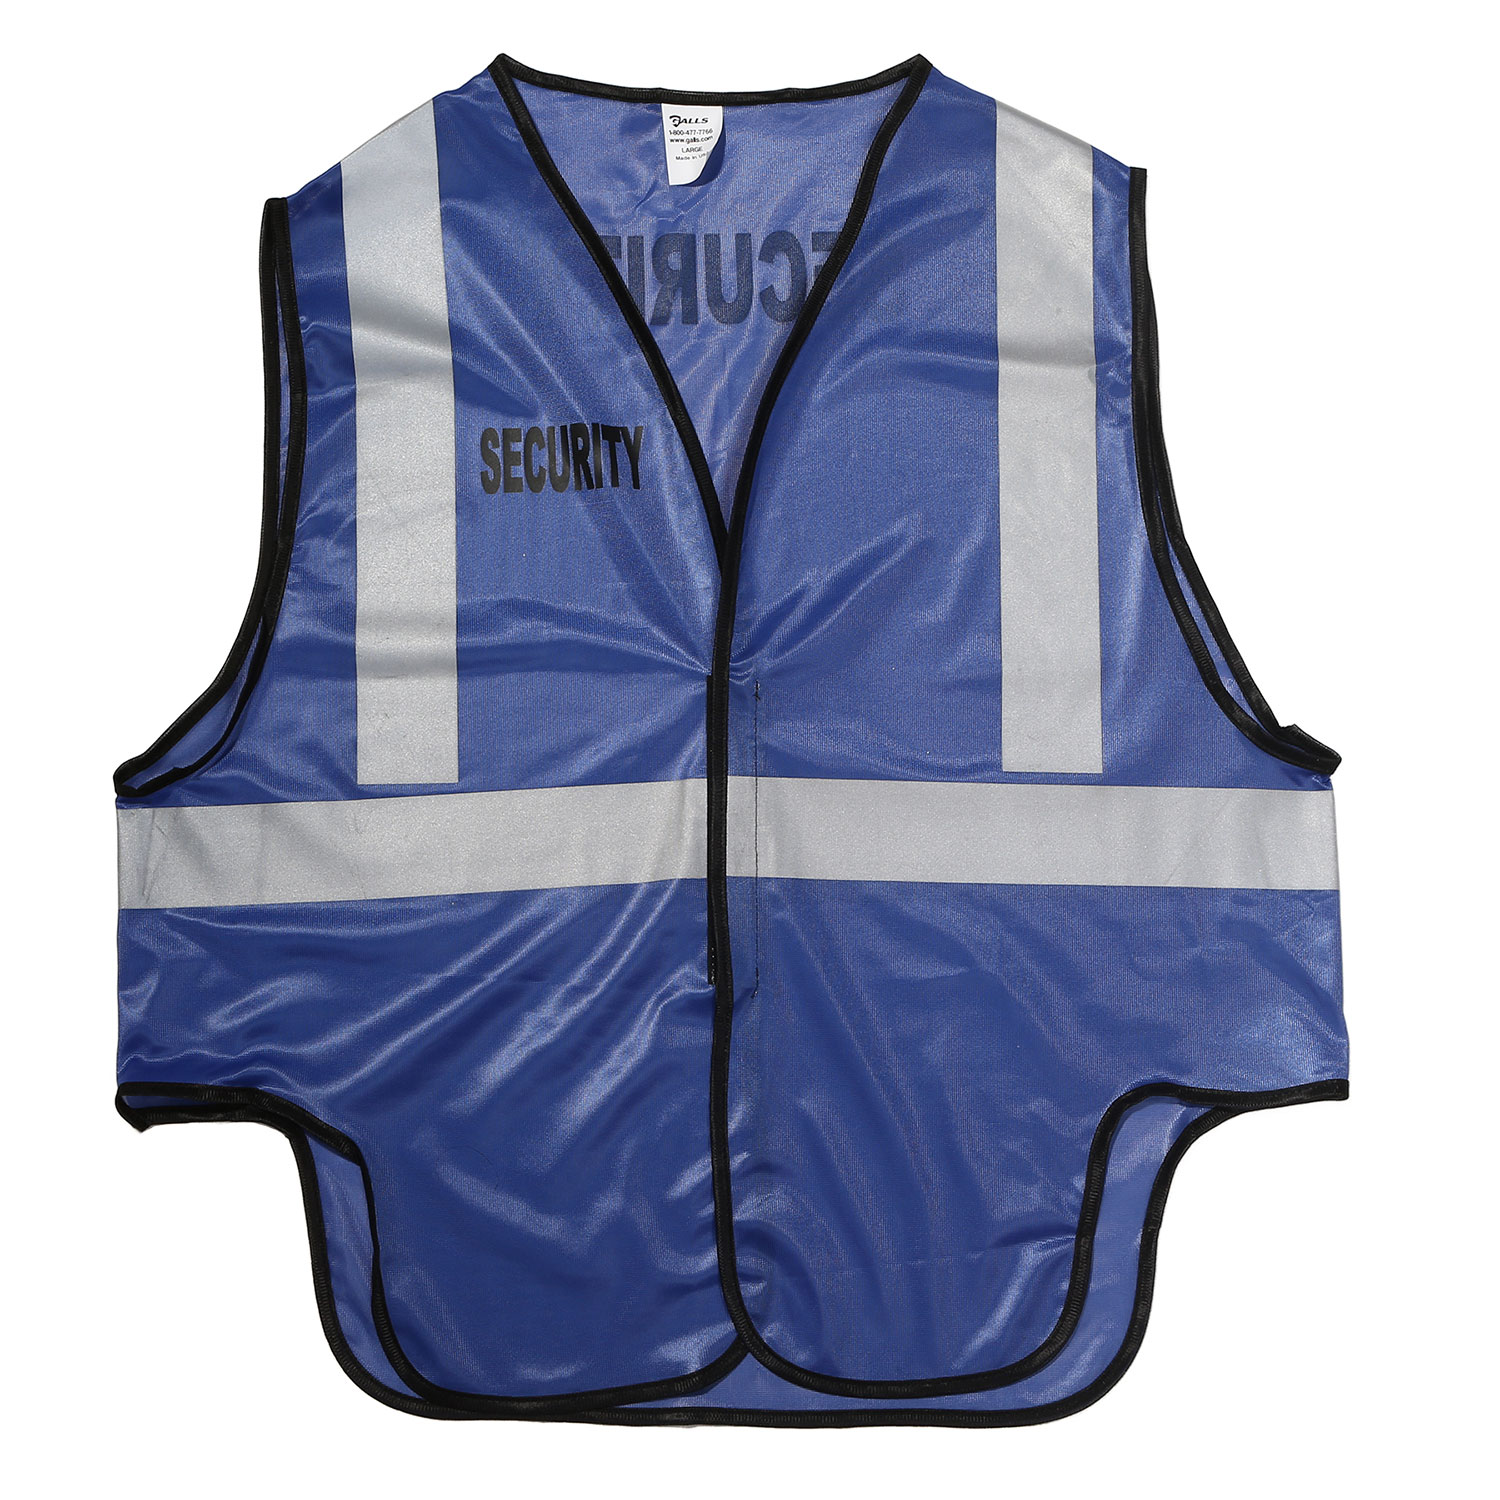 Galls ANSI 207 2006 and Class II Traffic Safety Vest